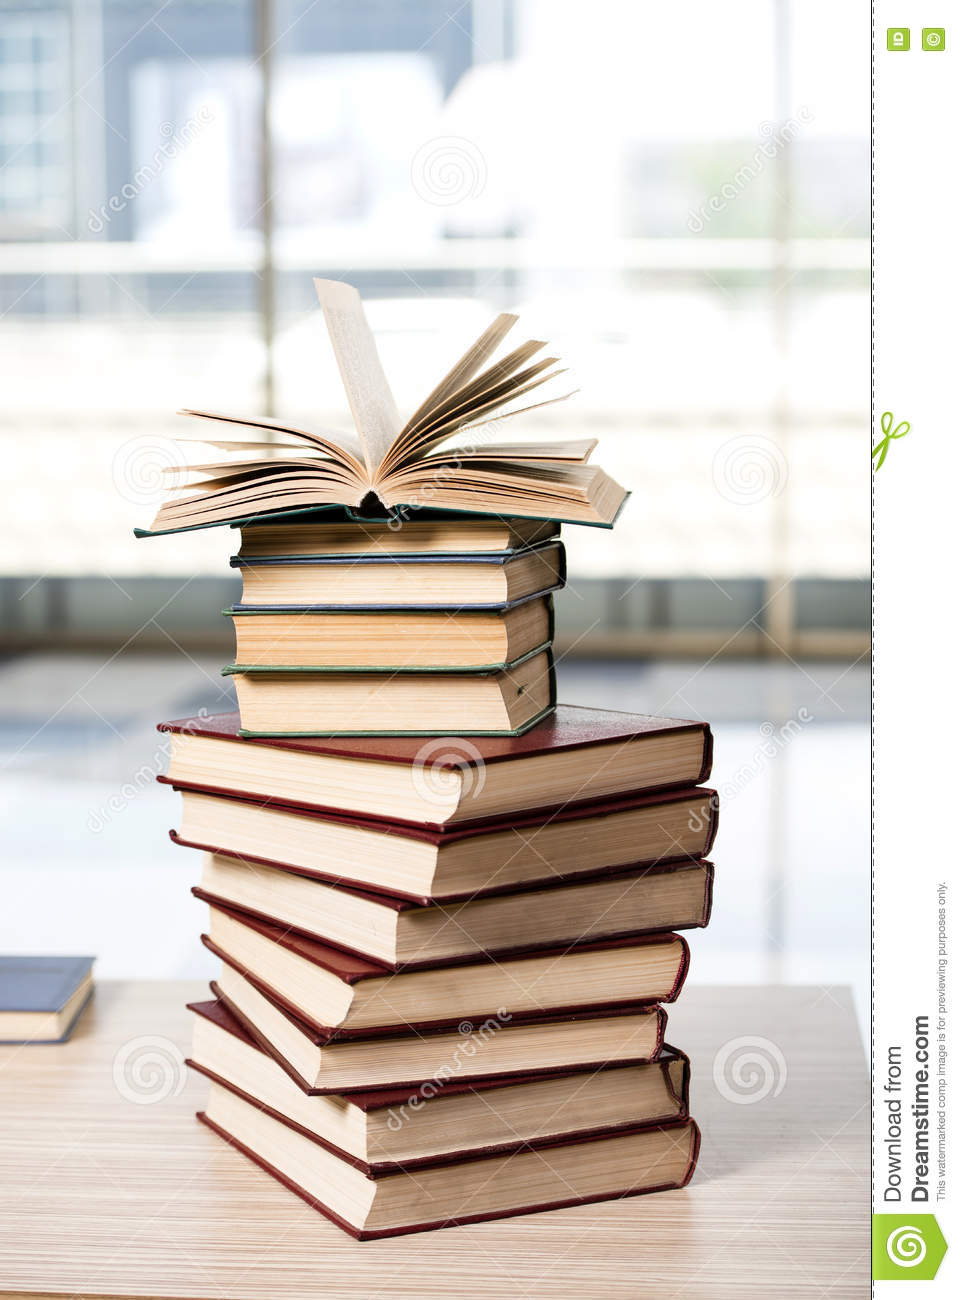 Sensational The Stack Of Books Arranged The Office Desk Stock Photo Download Free Architecture Designs Ogrambritishbridgeorg